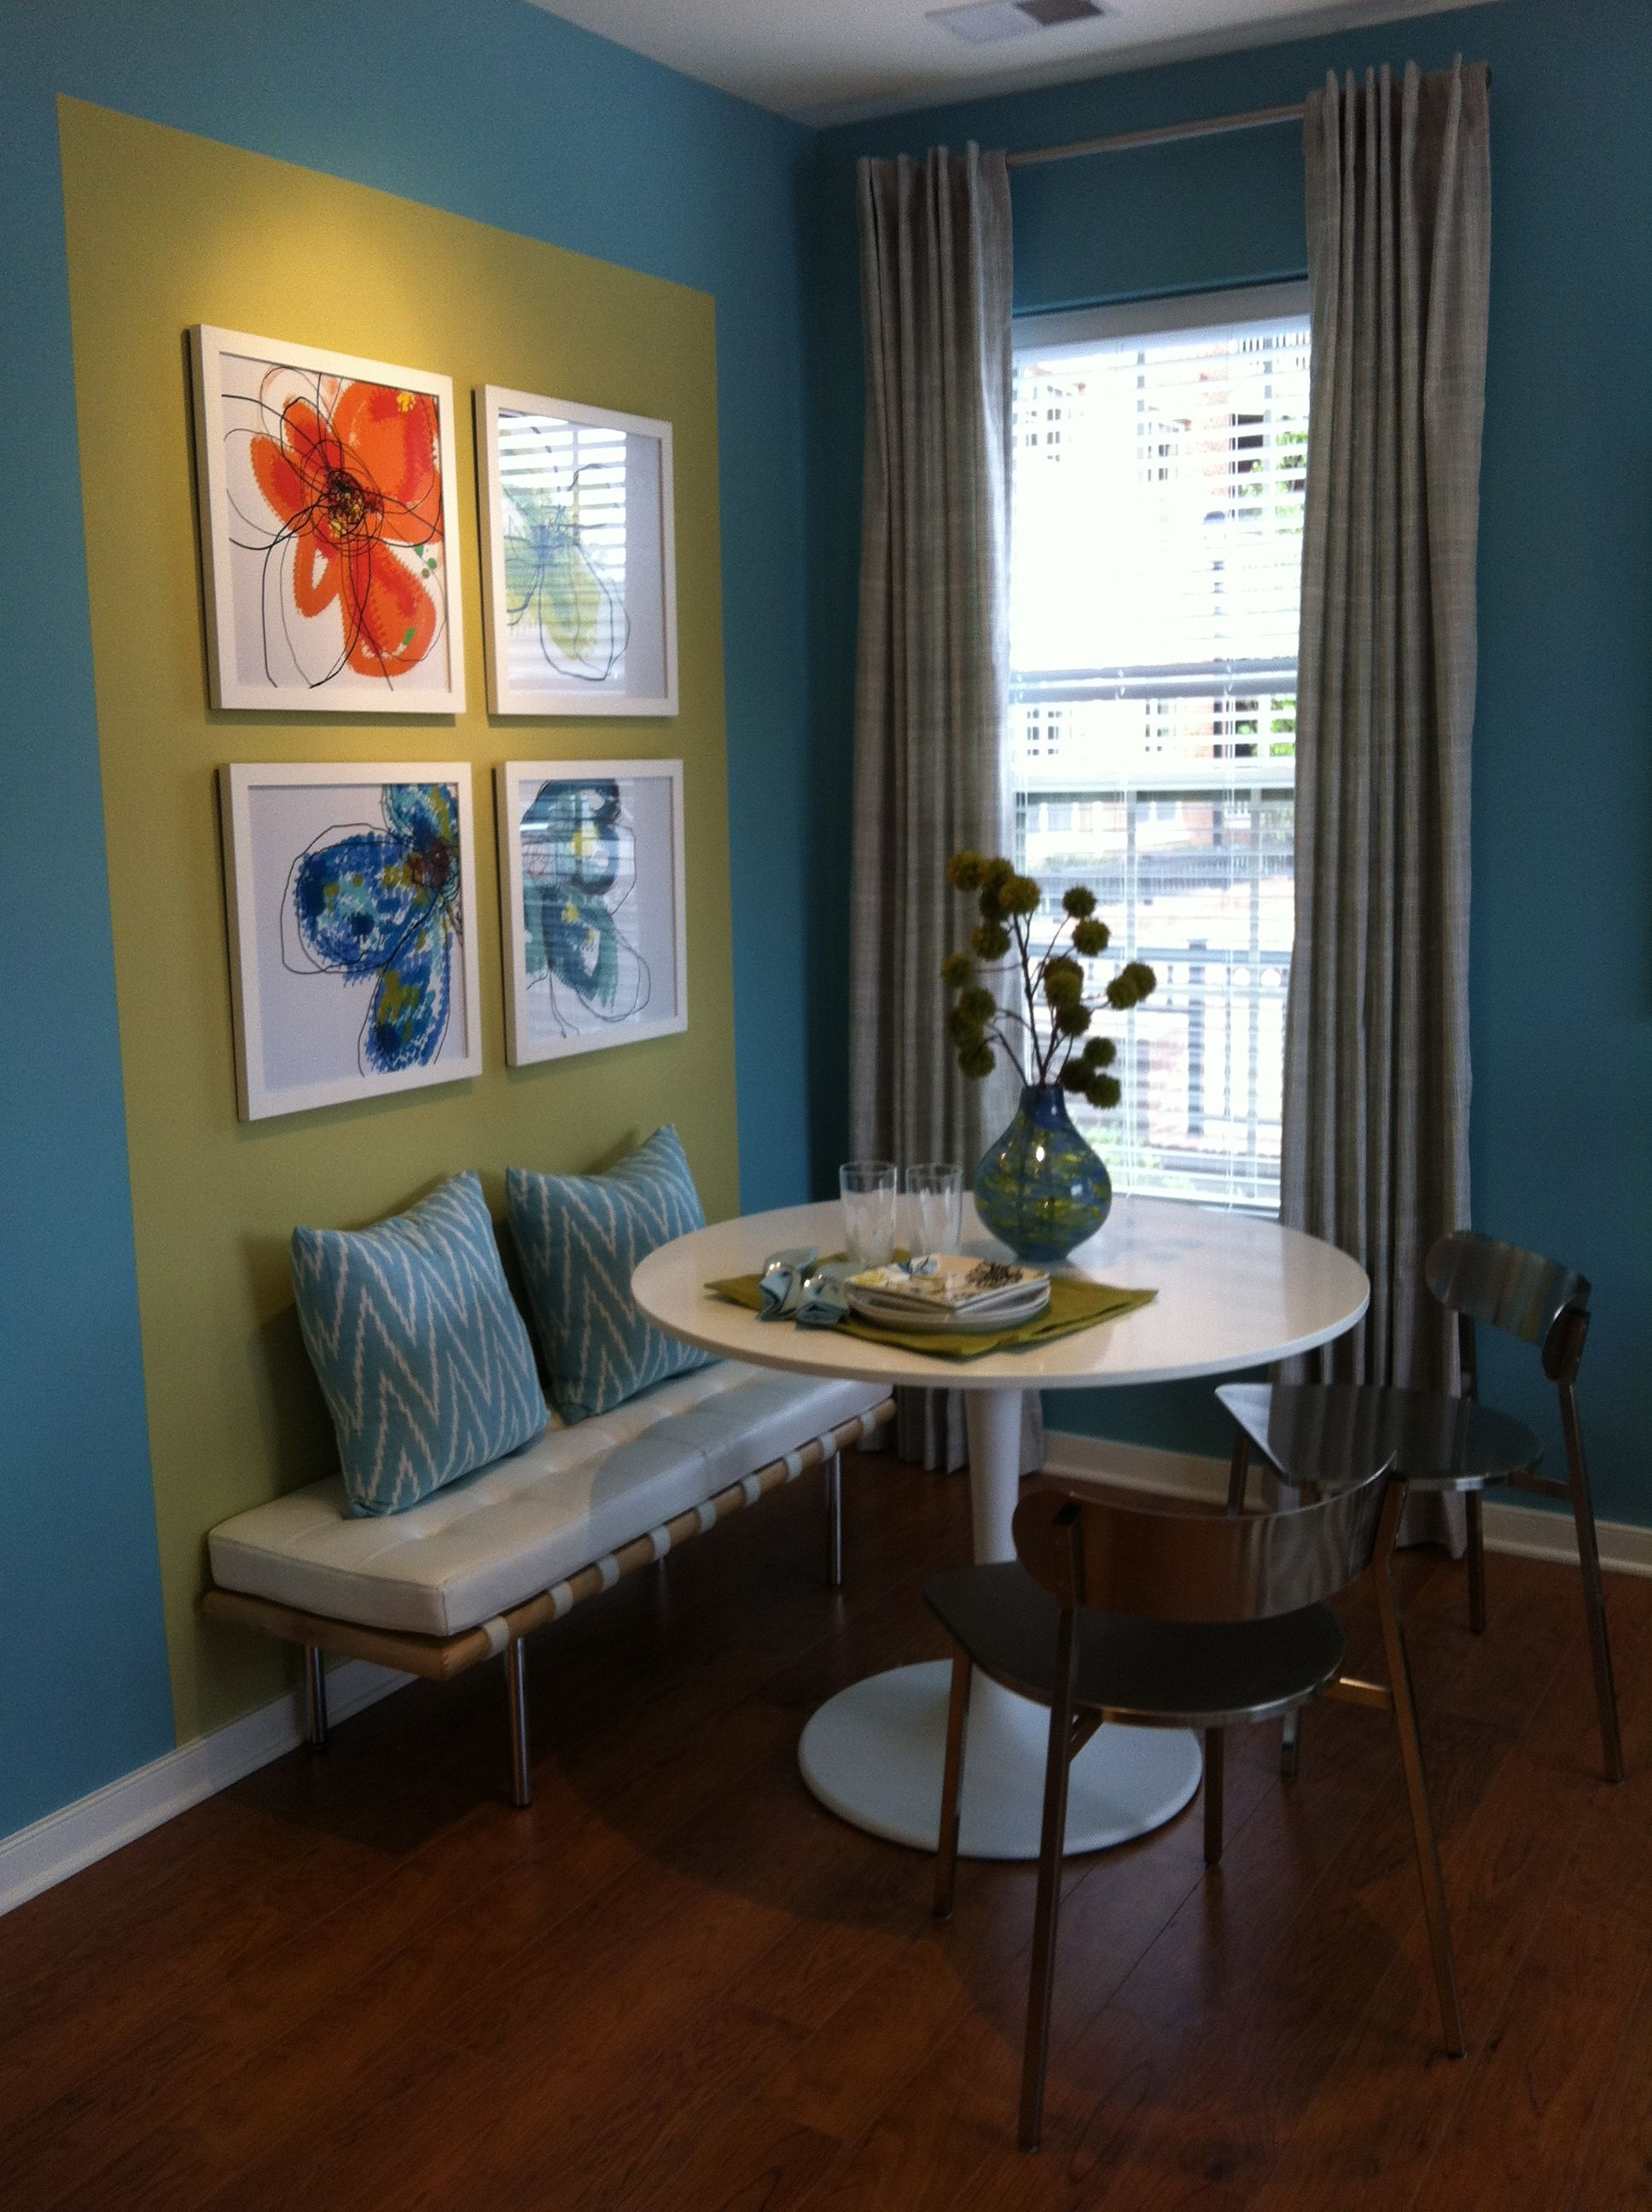 Dining Room Designs For Small Spaces: Interior Concepts, Paradigm, Buckingham Village, 2BR